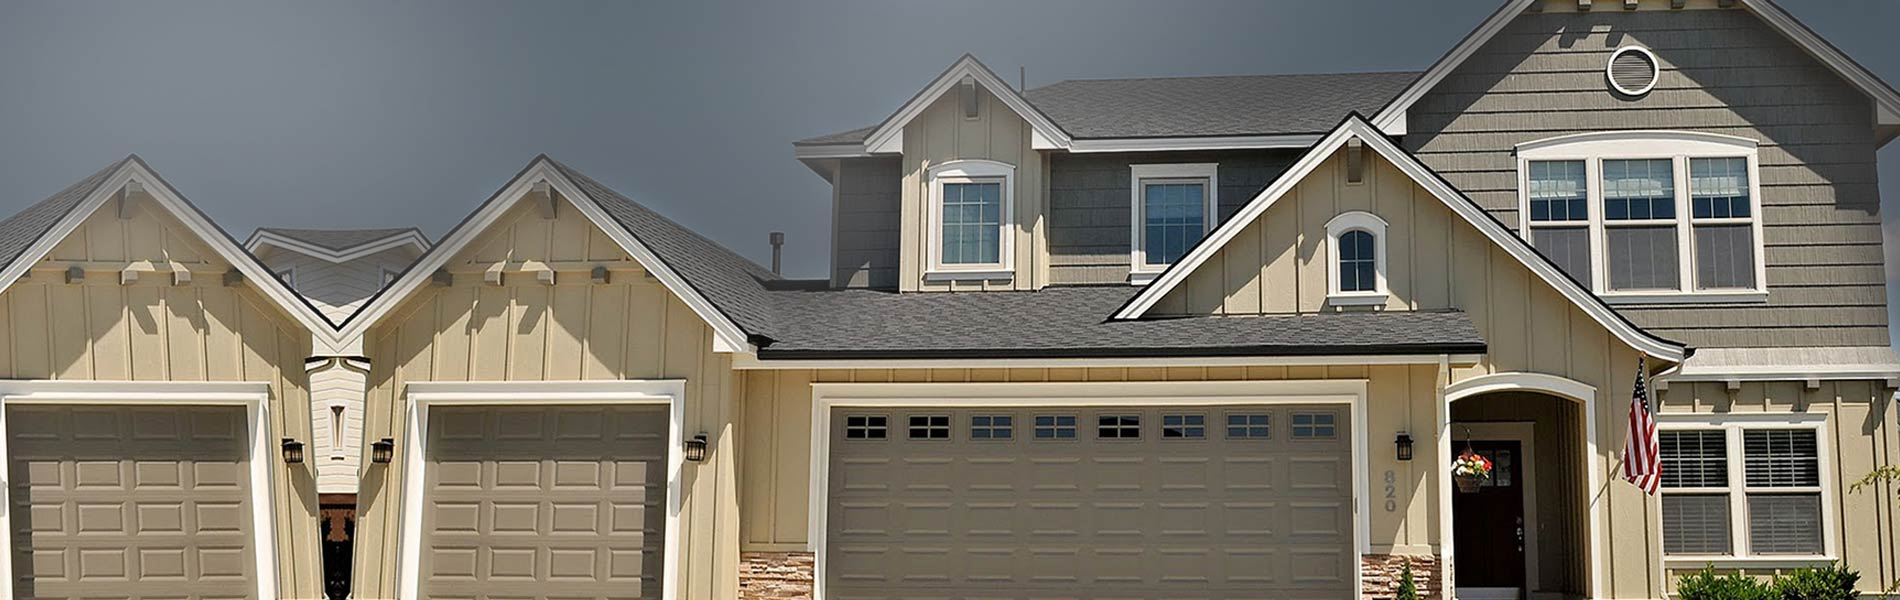 Galaxy Garage Door Service Phoenix, AZ 602-833-6801